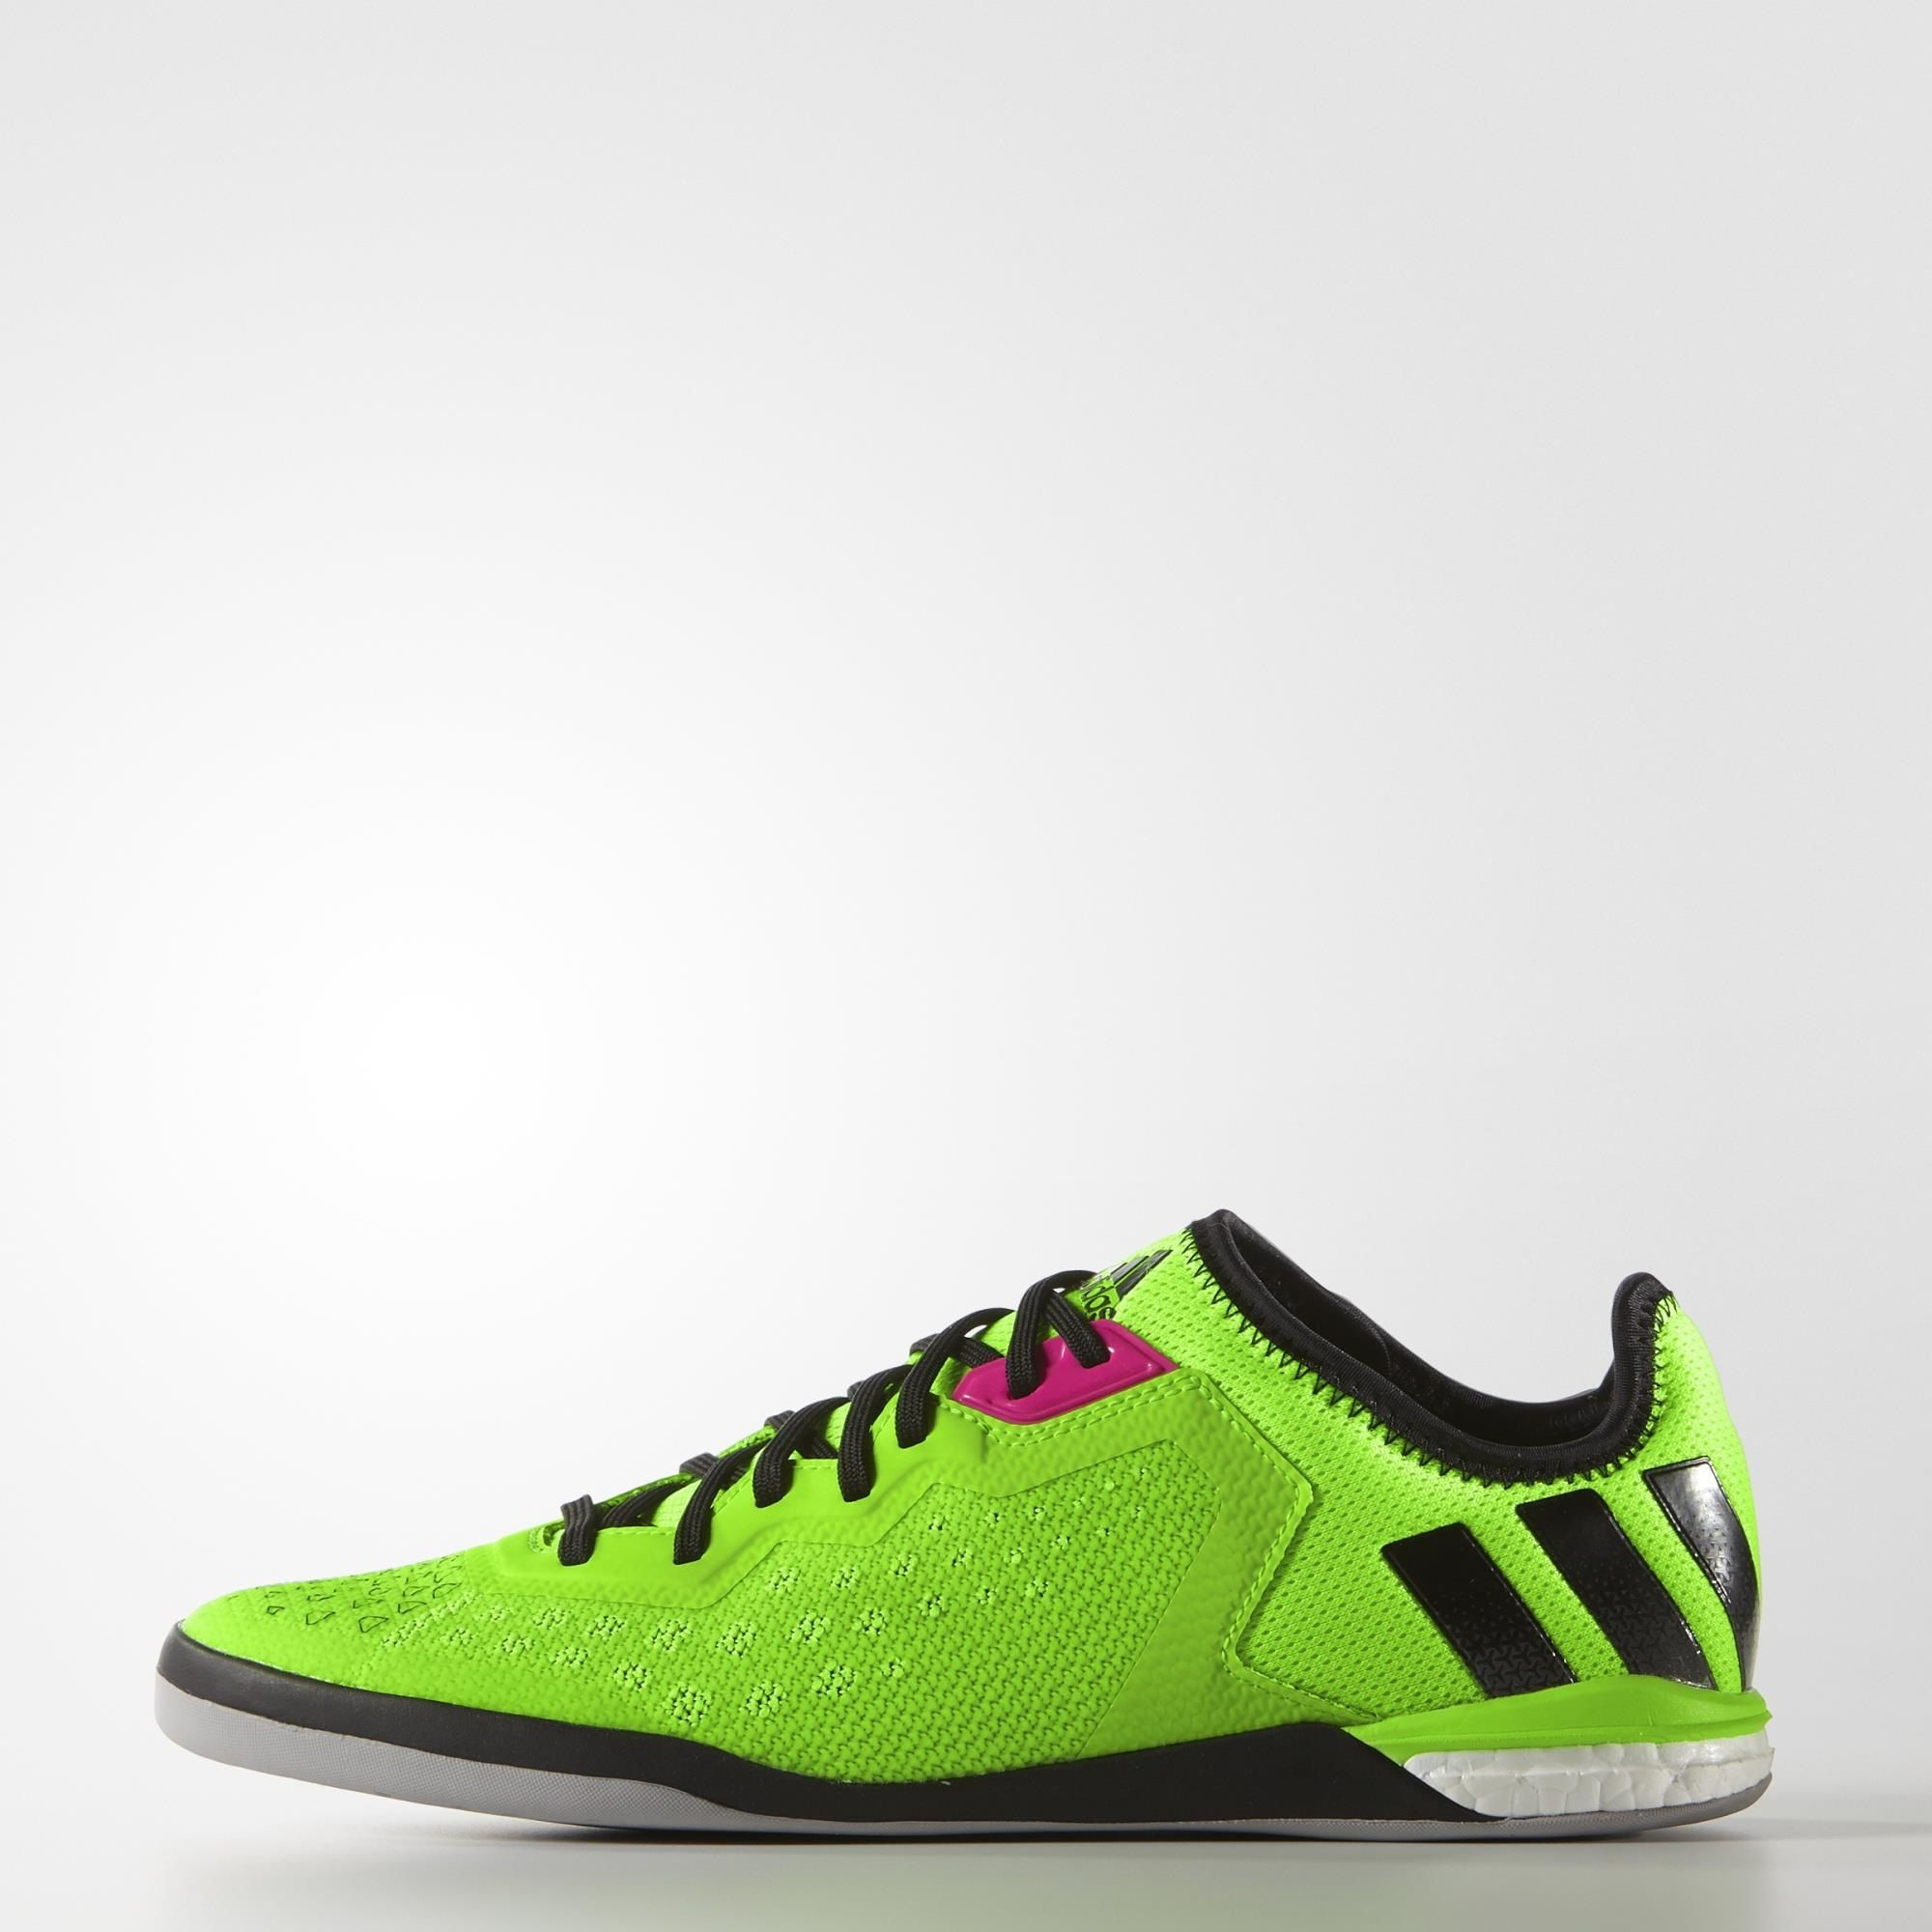 new style f4a99 e04c9 promo code for adidas x ace 16.1 88cd3 f4fb9